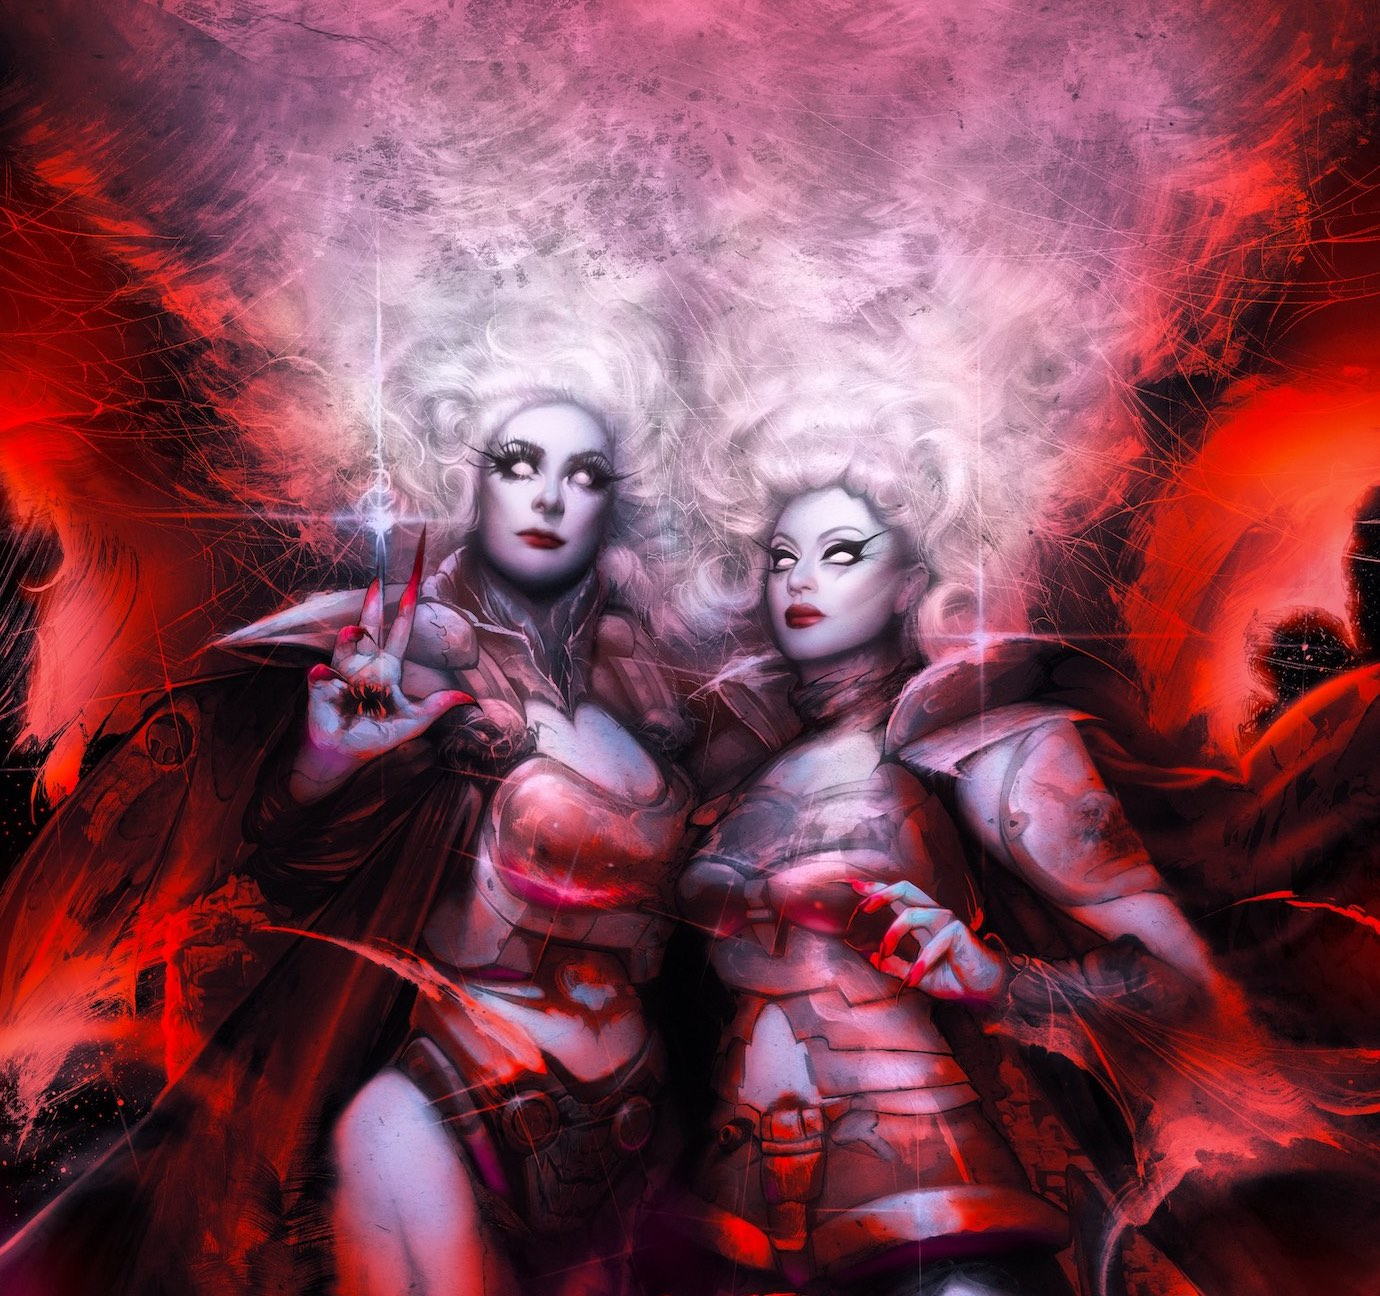 Heavy Metal Magazine gets Boulet Brothers takeover this Halloween